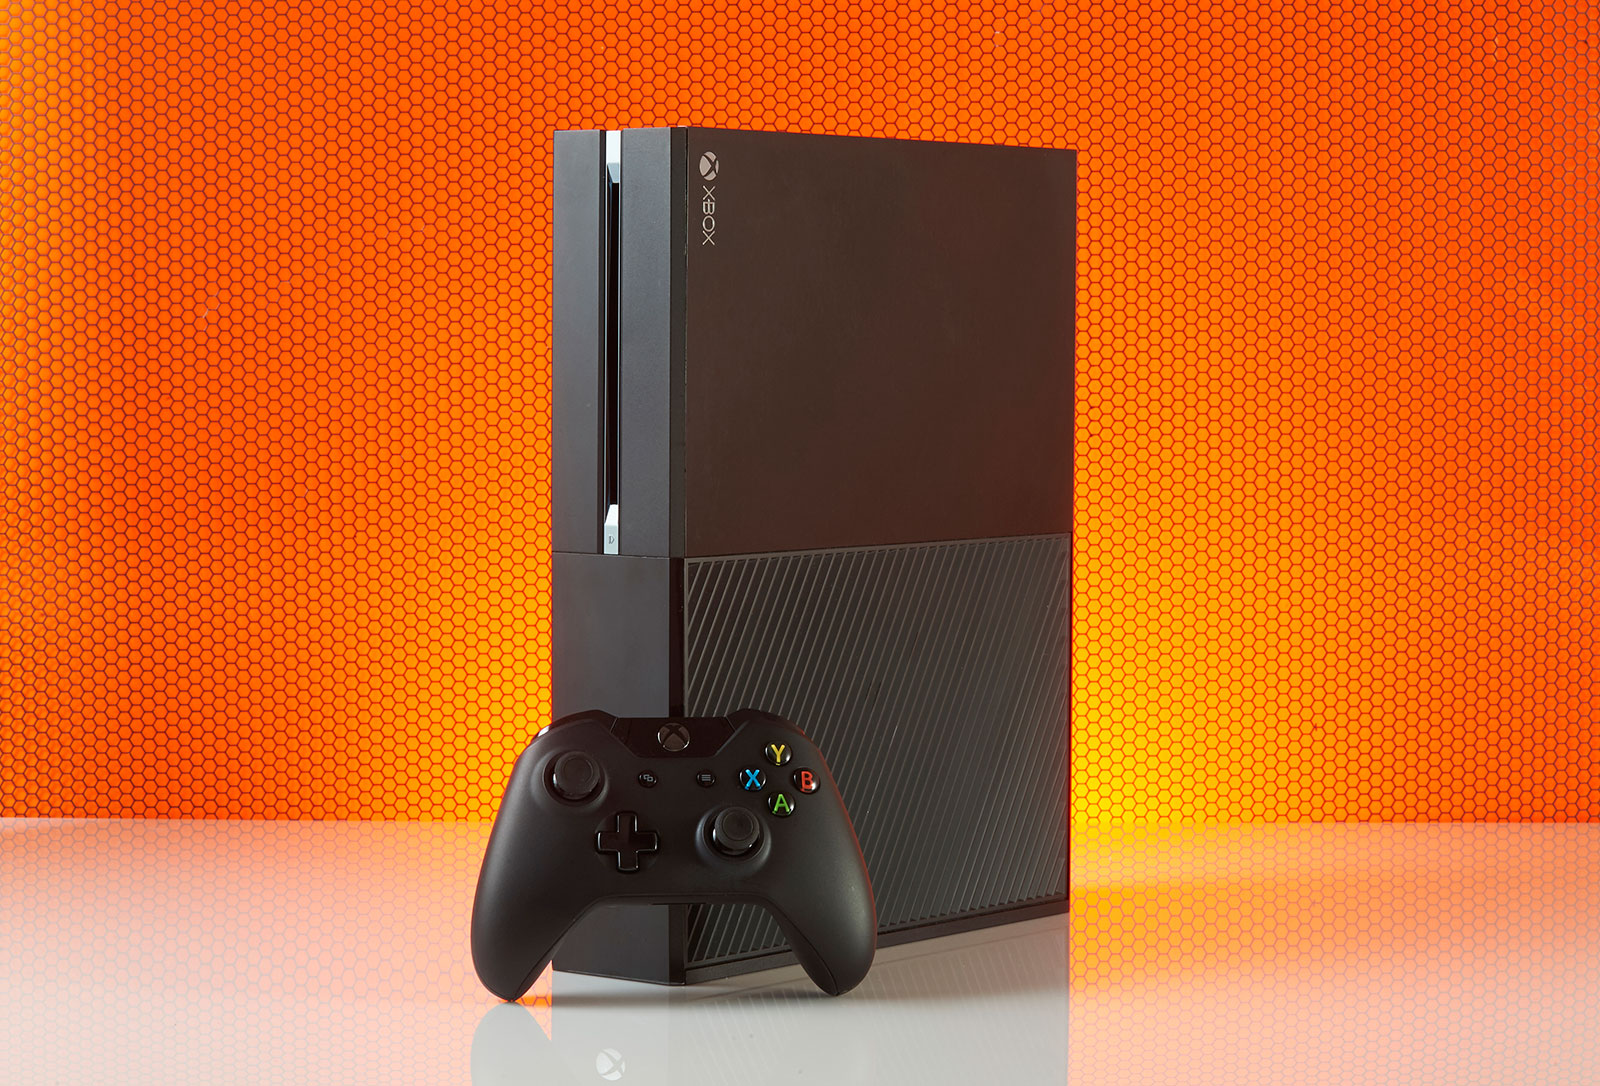 The Xbox One revisited: Microsoft's console has gotten higher with age